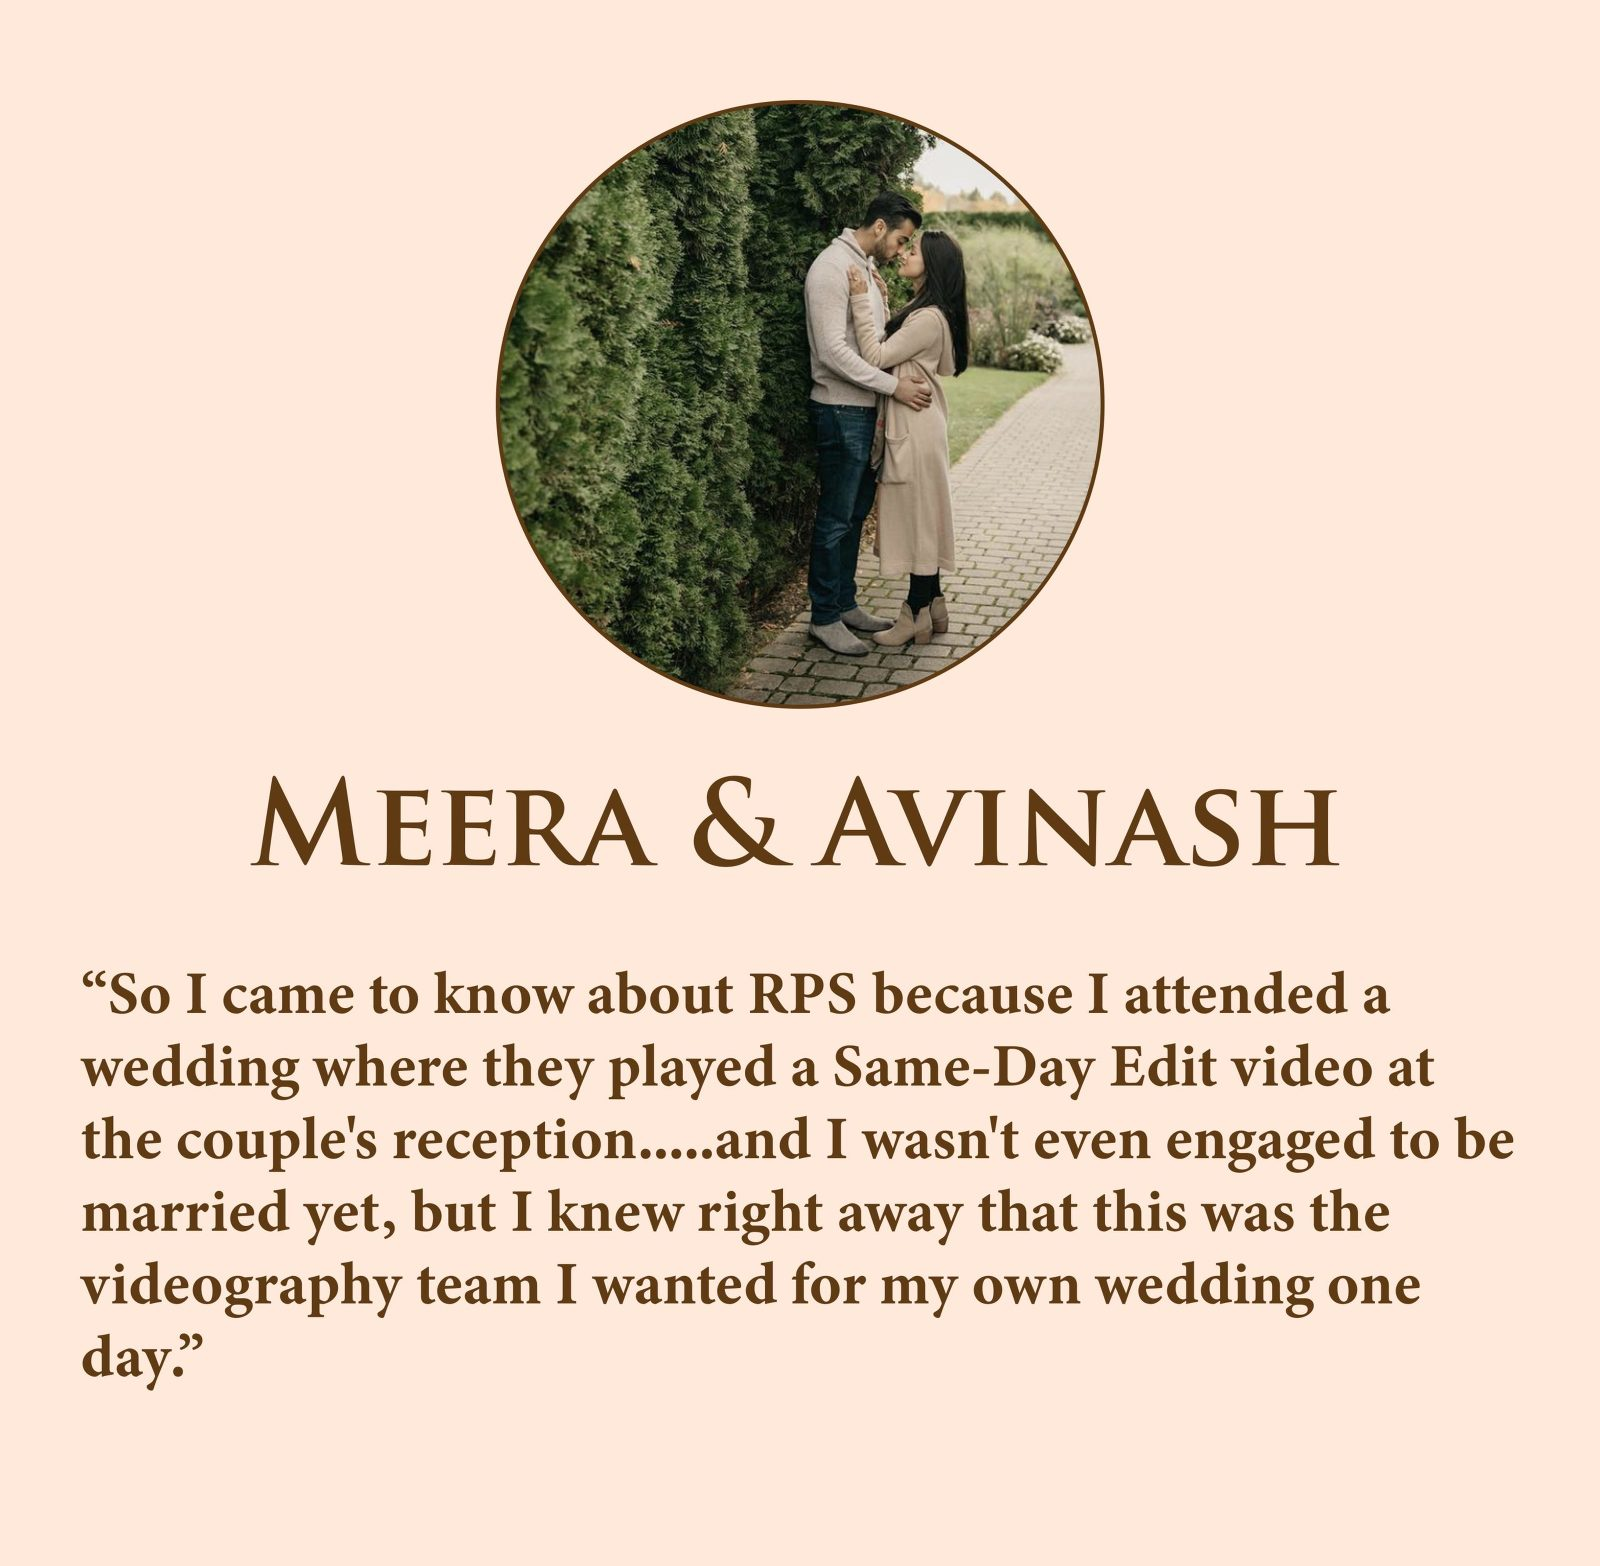 So I came to know about RPS because I attended a wedding where they played a Same-Day Edit video at the couple's reception.....and I wasn't even engaged to be married yet, but I knew right away that this was the videography team I wanted for my own wedding one day.